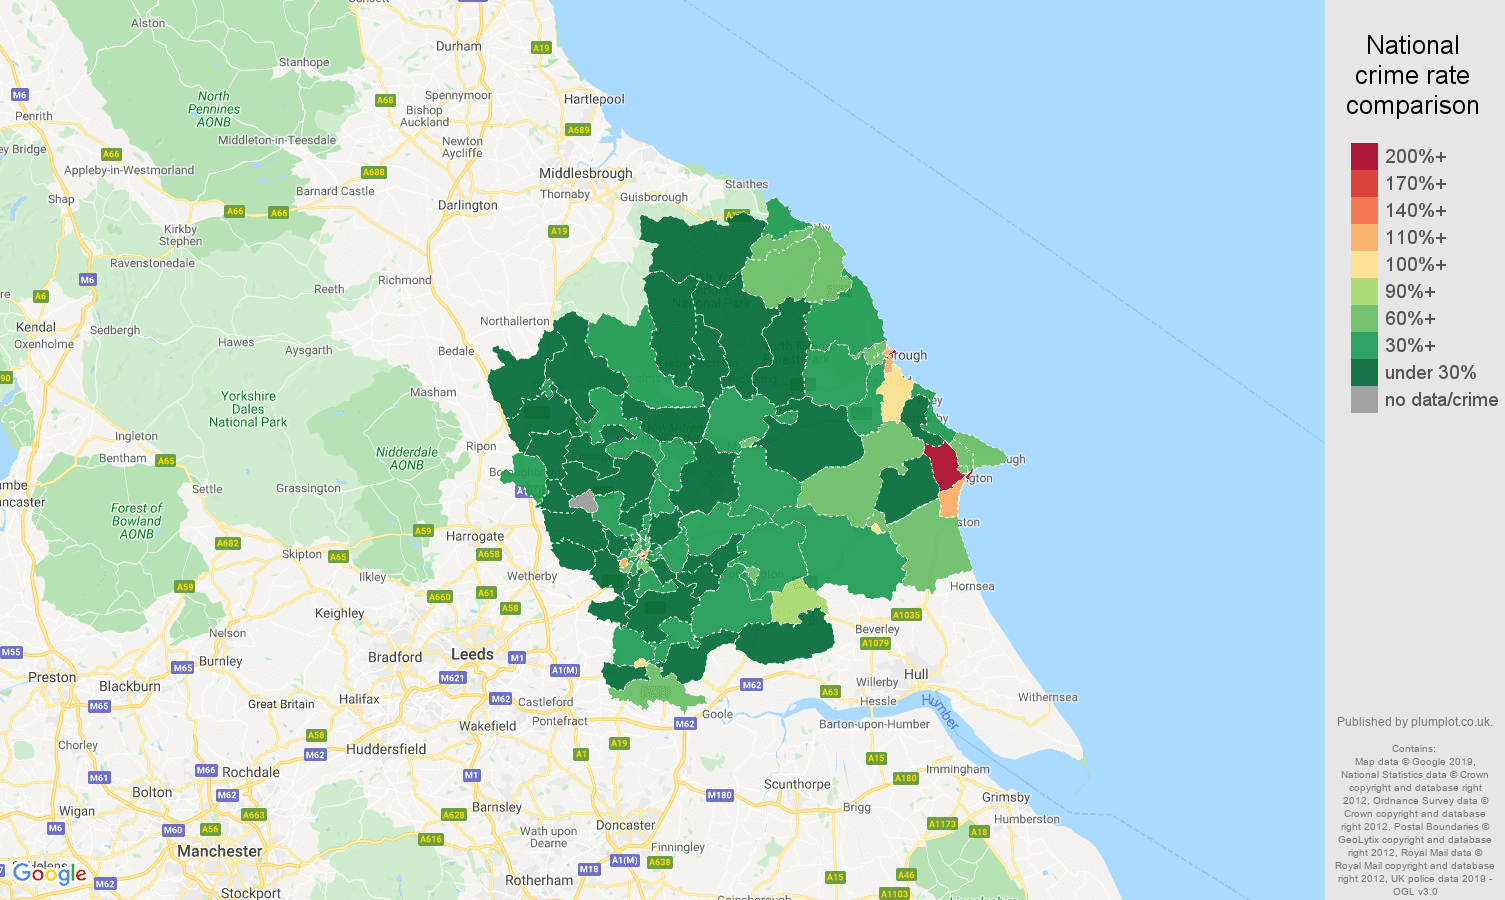 York public order crime rate comparison map